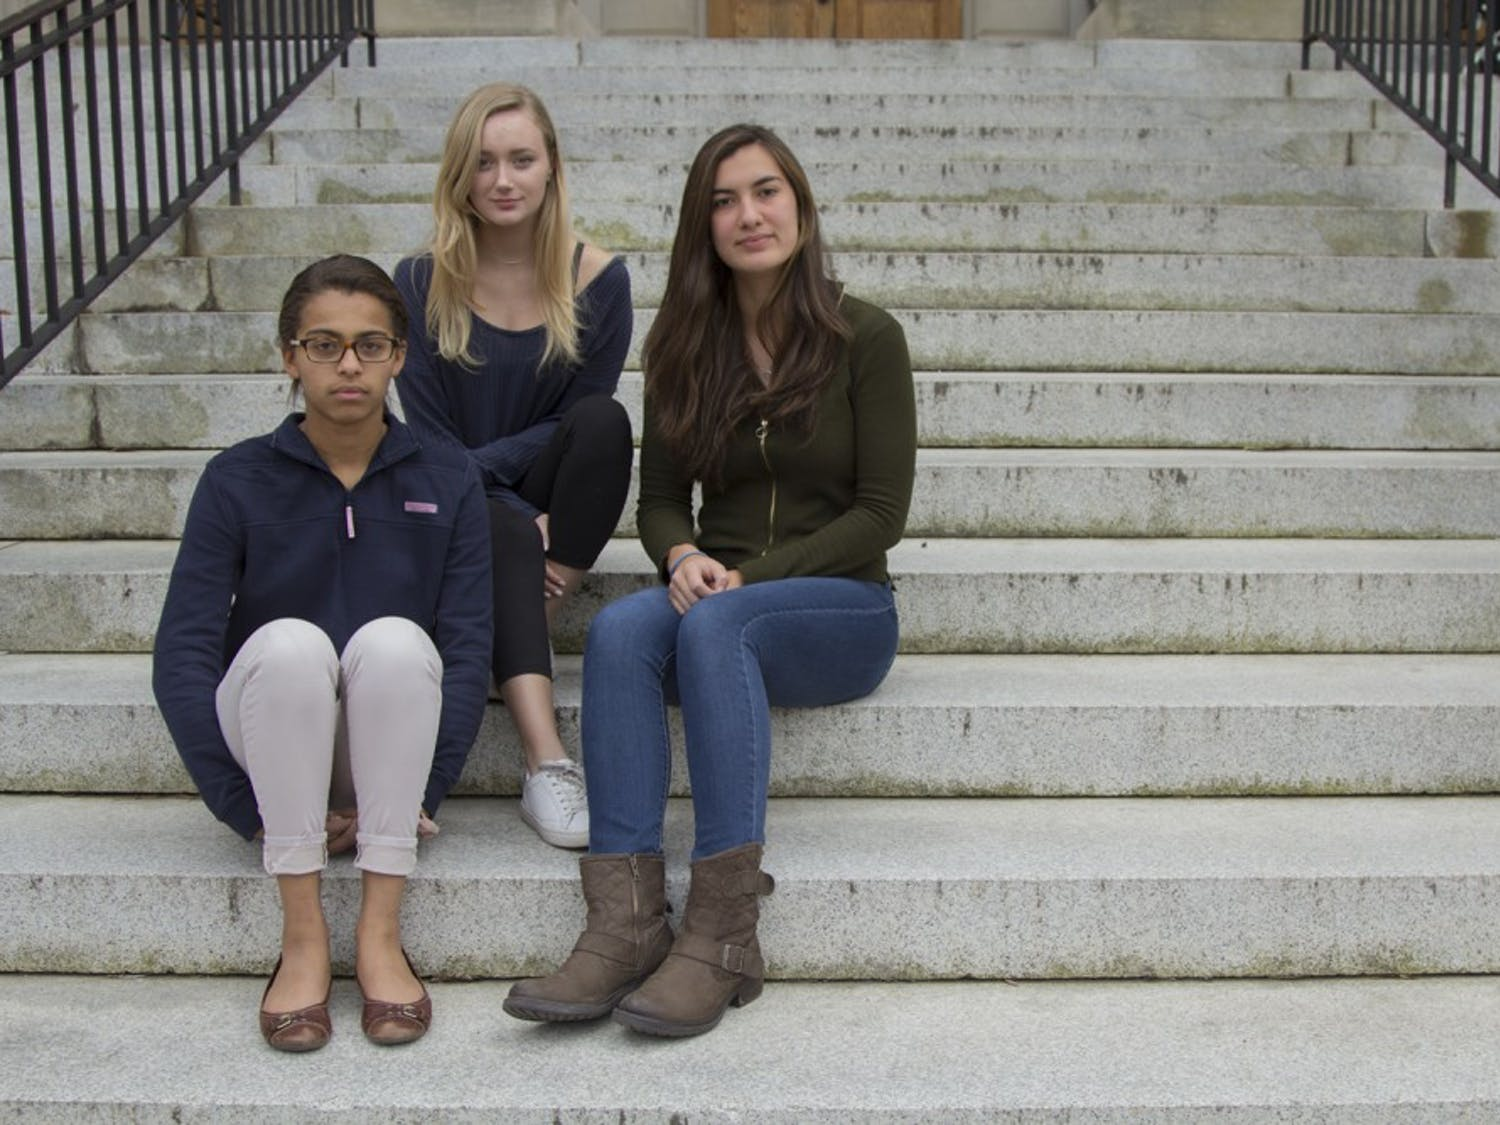 First-years Delainey Kirkwood (left), Charlotte Smith (middle), and Monica Mussack (right) are international students who attend UNC.